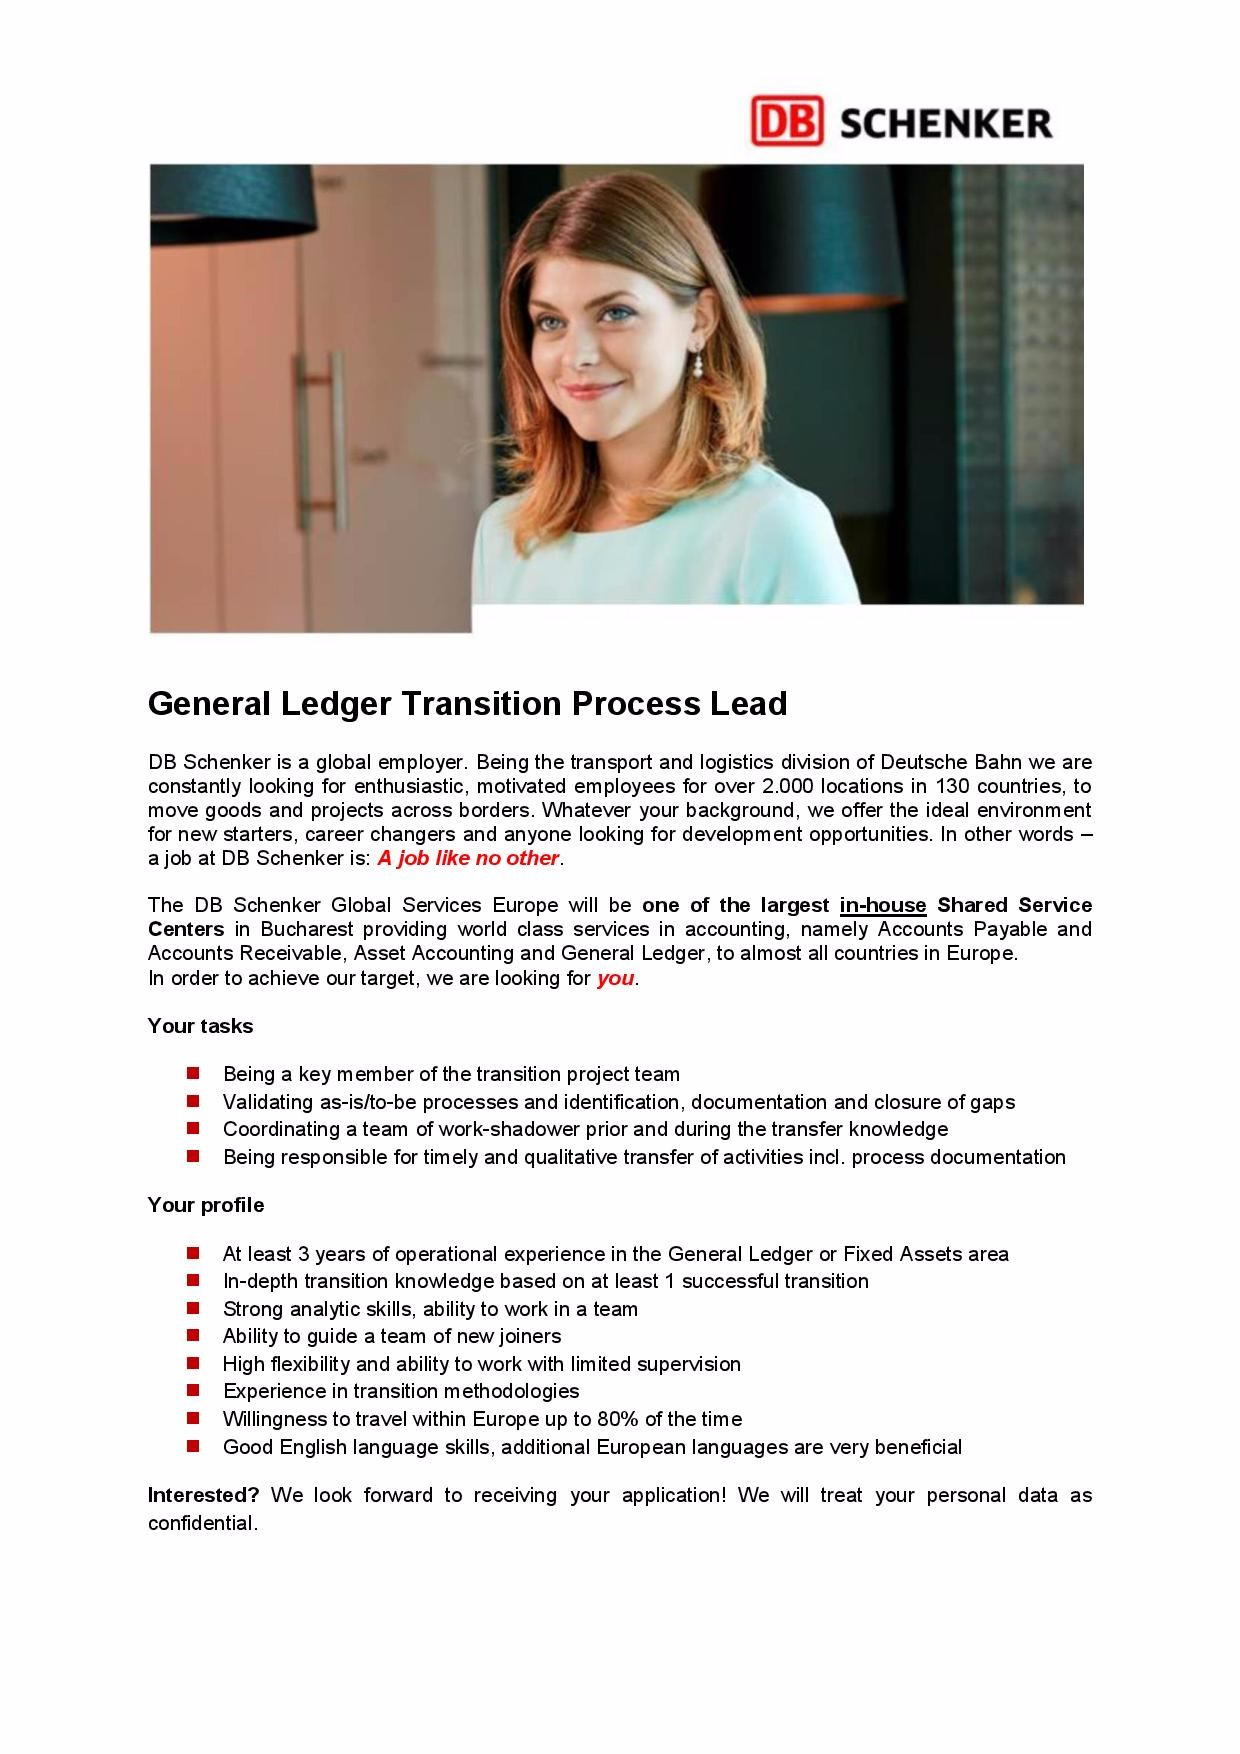 Job Add General Ledger Transition Process Lead-page-001